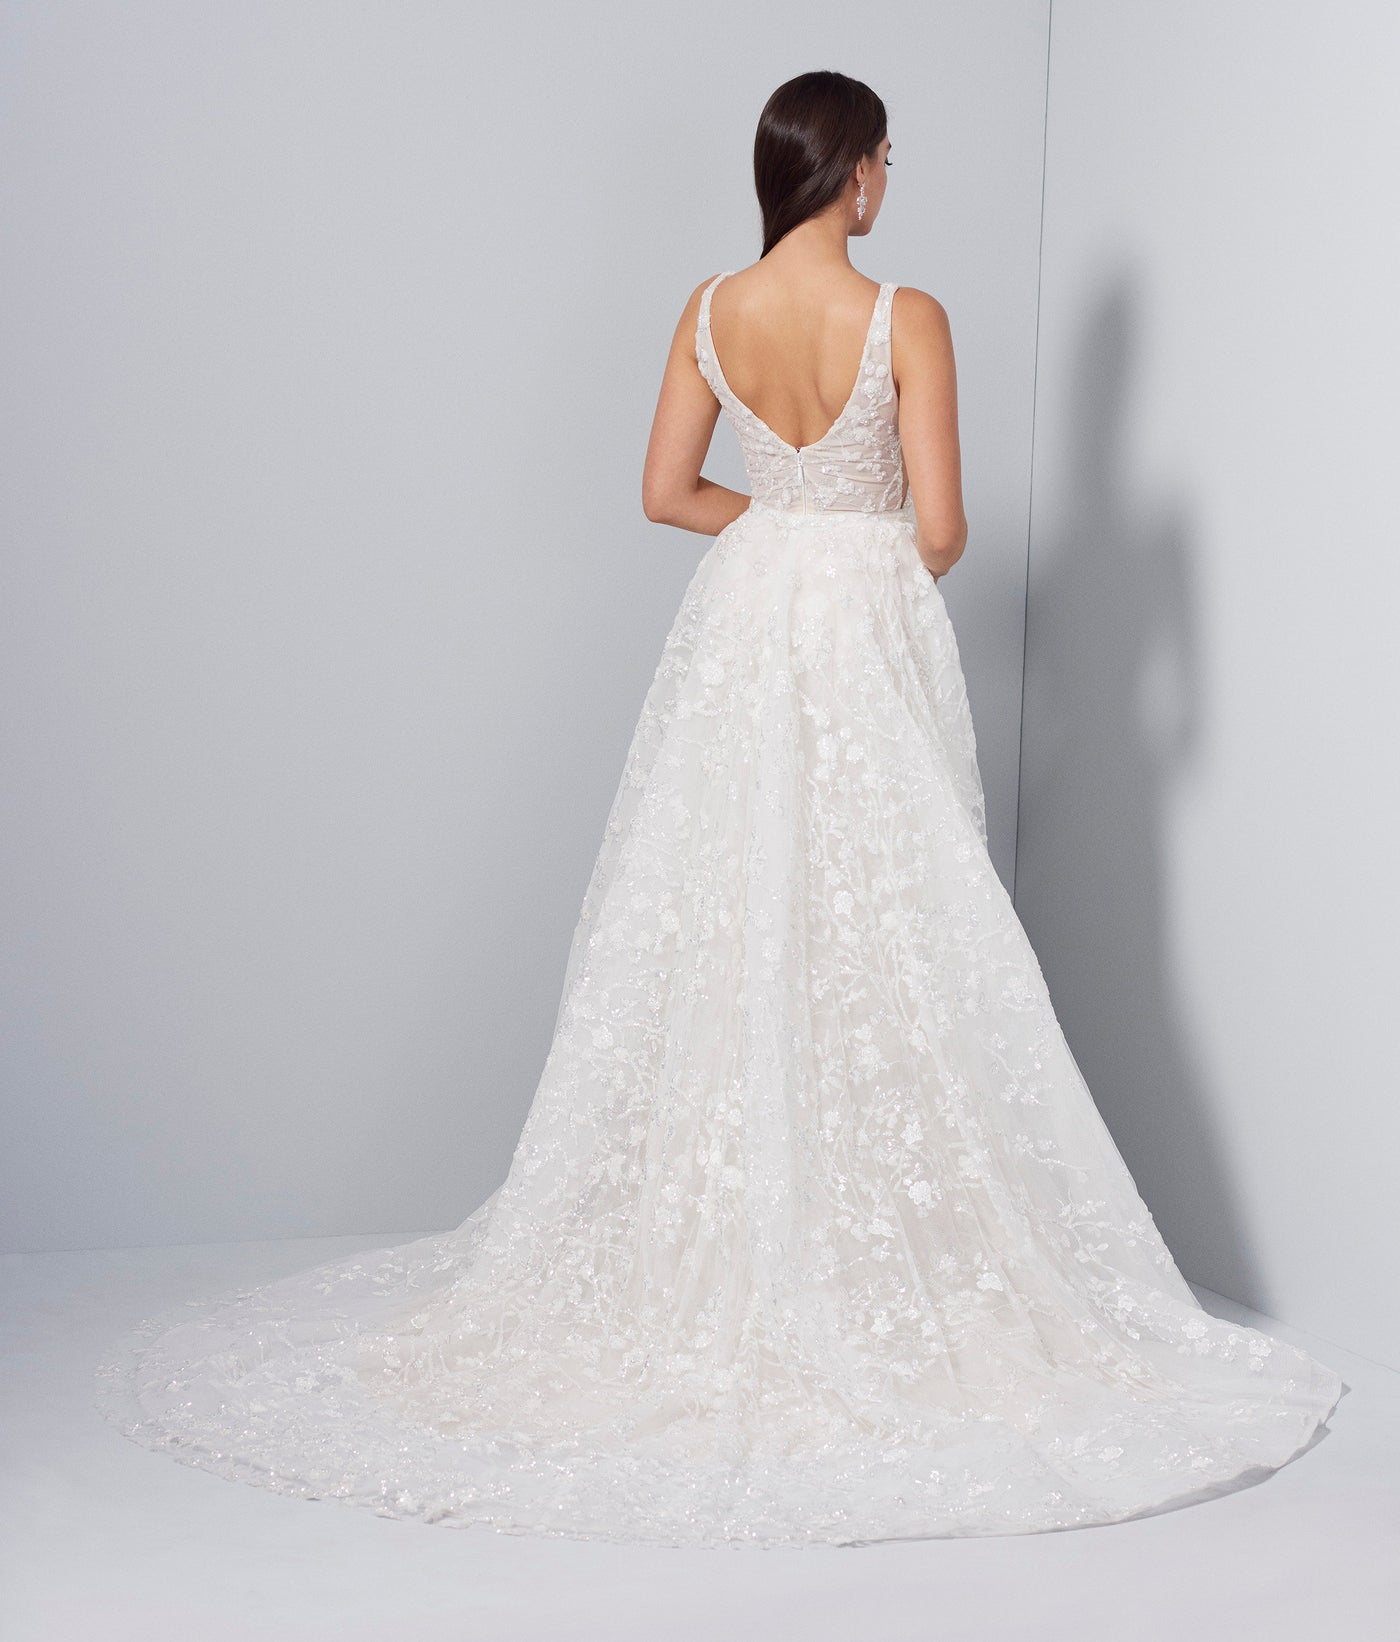 Tessa - Coming Soon, Gown, Lucia by Allison Webb - Eternal Bridal